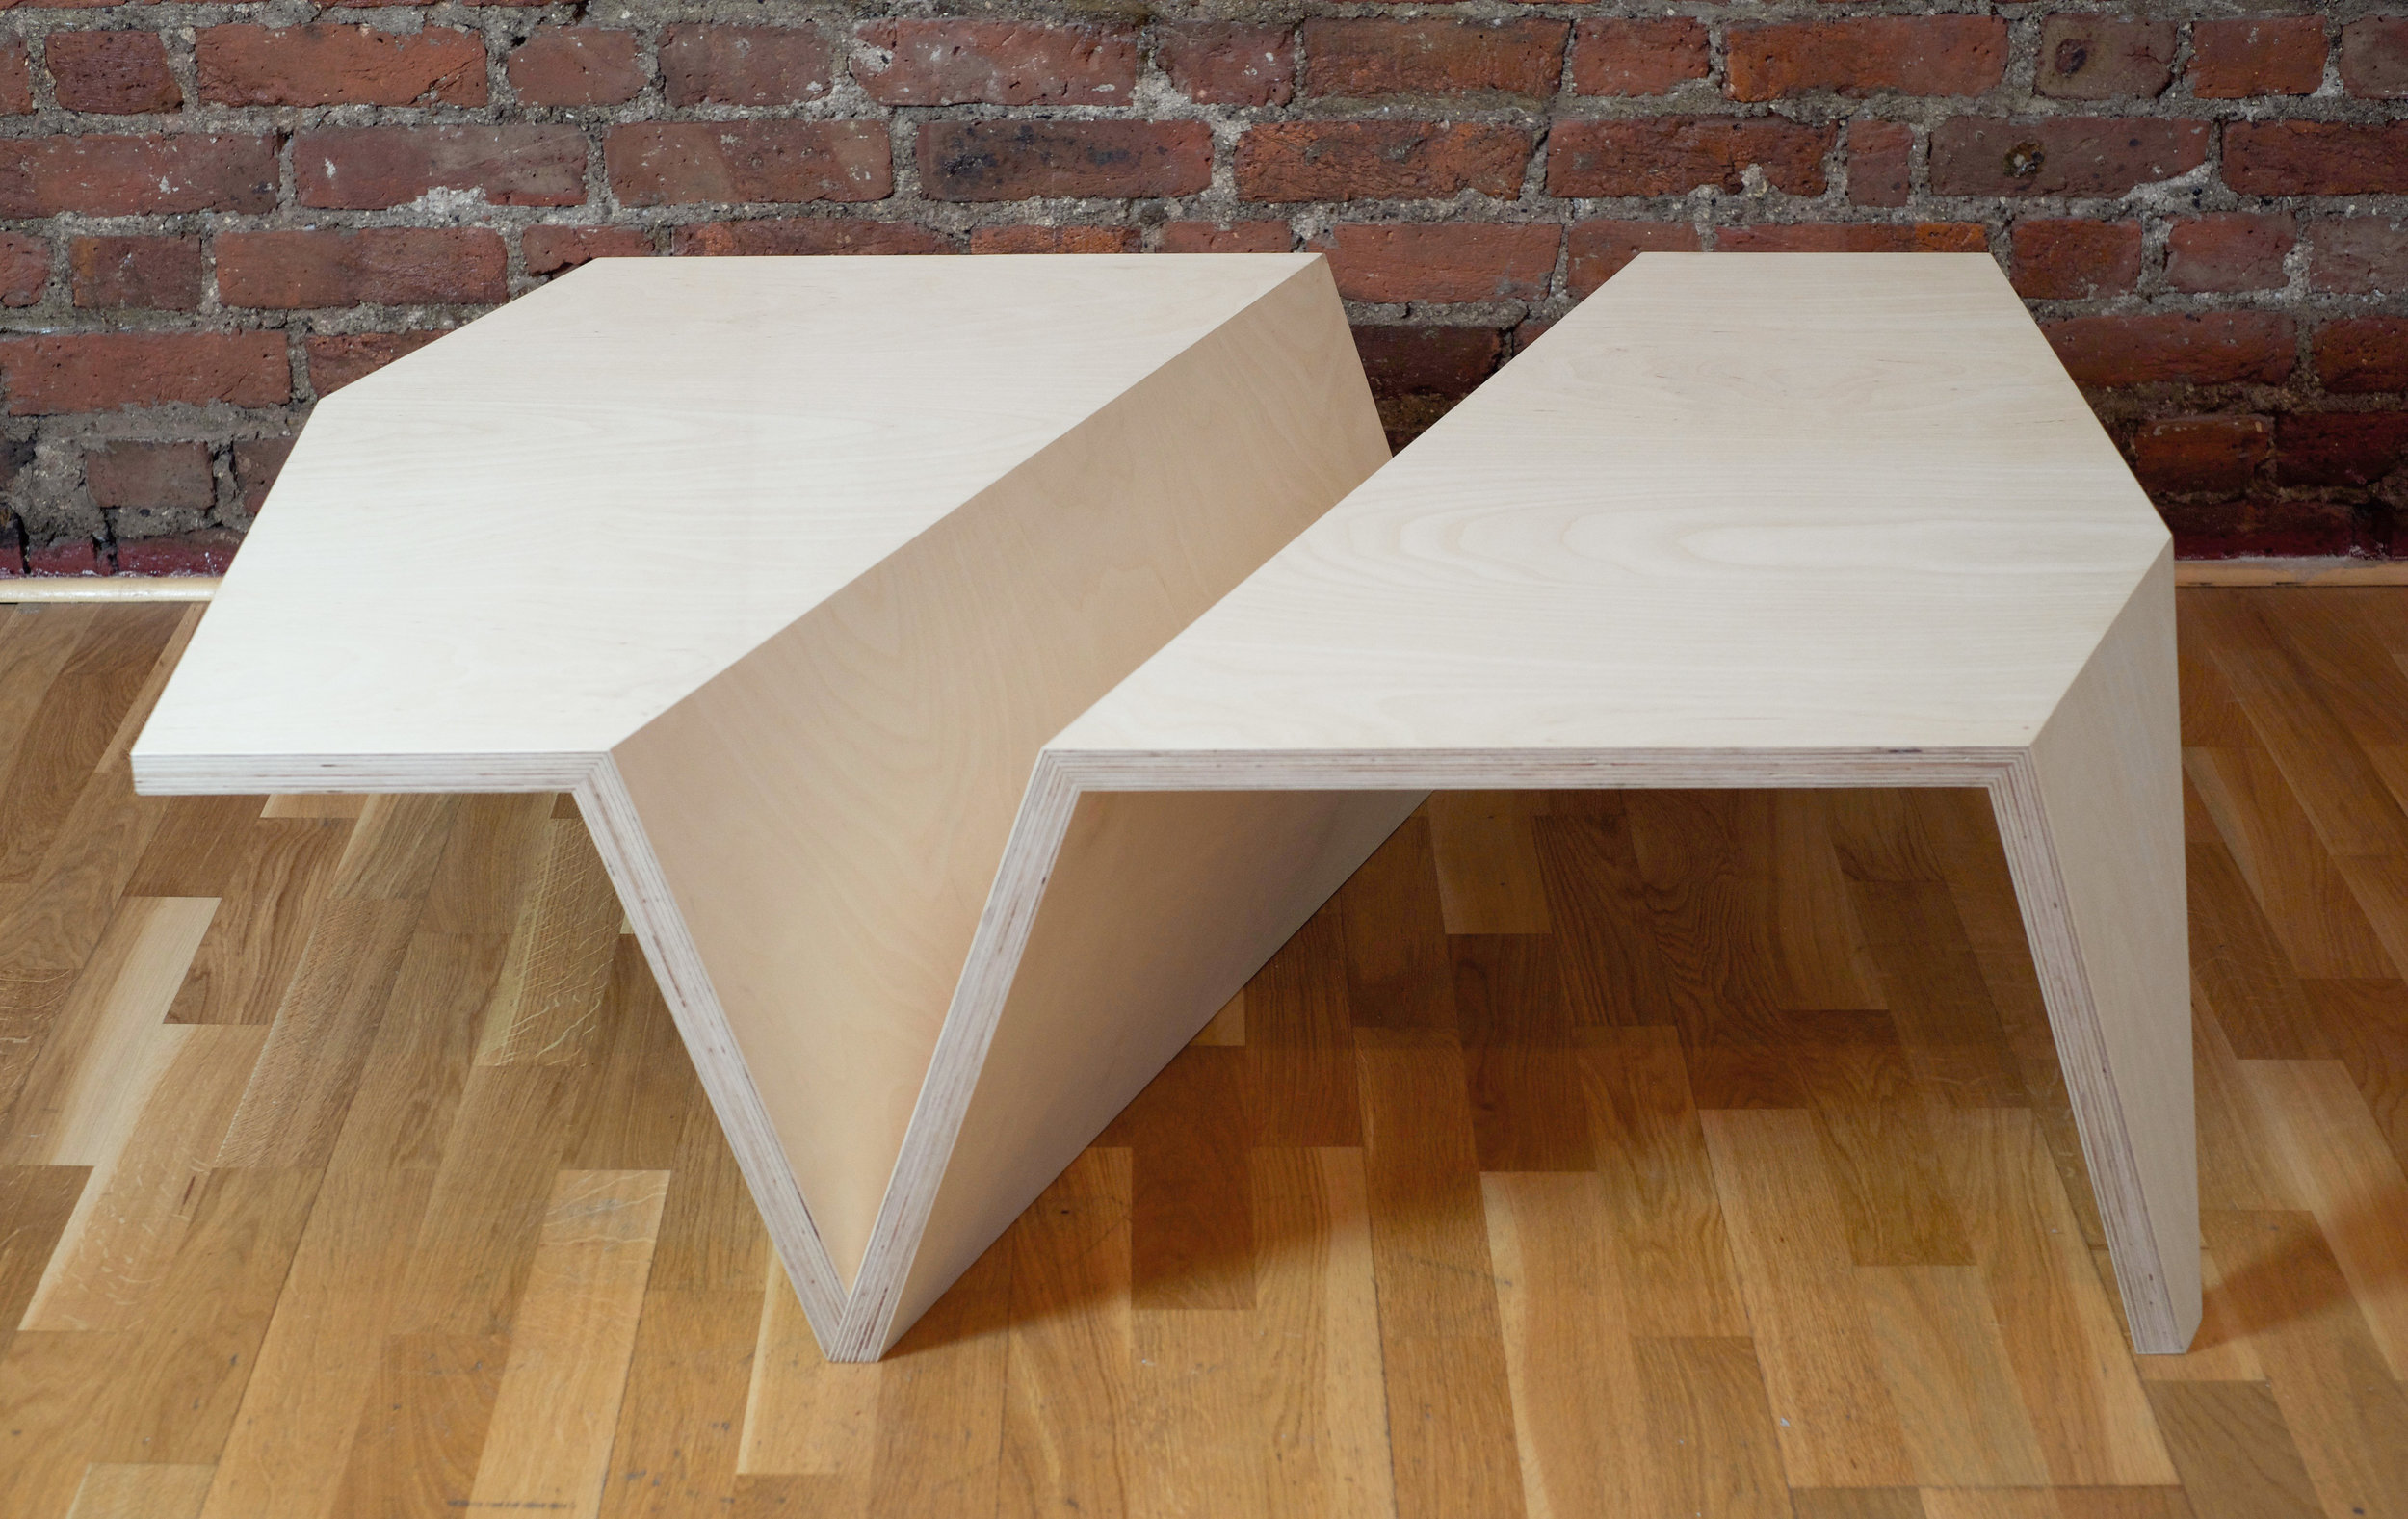 The Origami Low Coffee Table in Beech Ply - Simplicity is the ultimate form of sophistication.